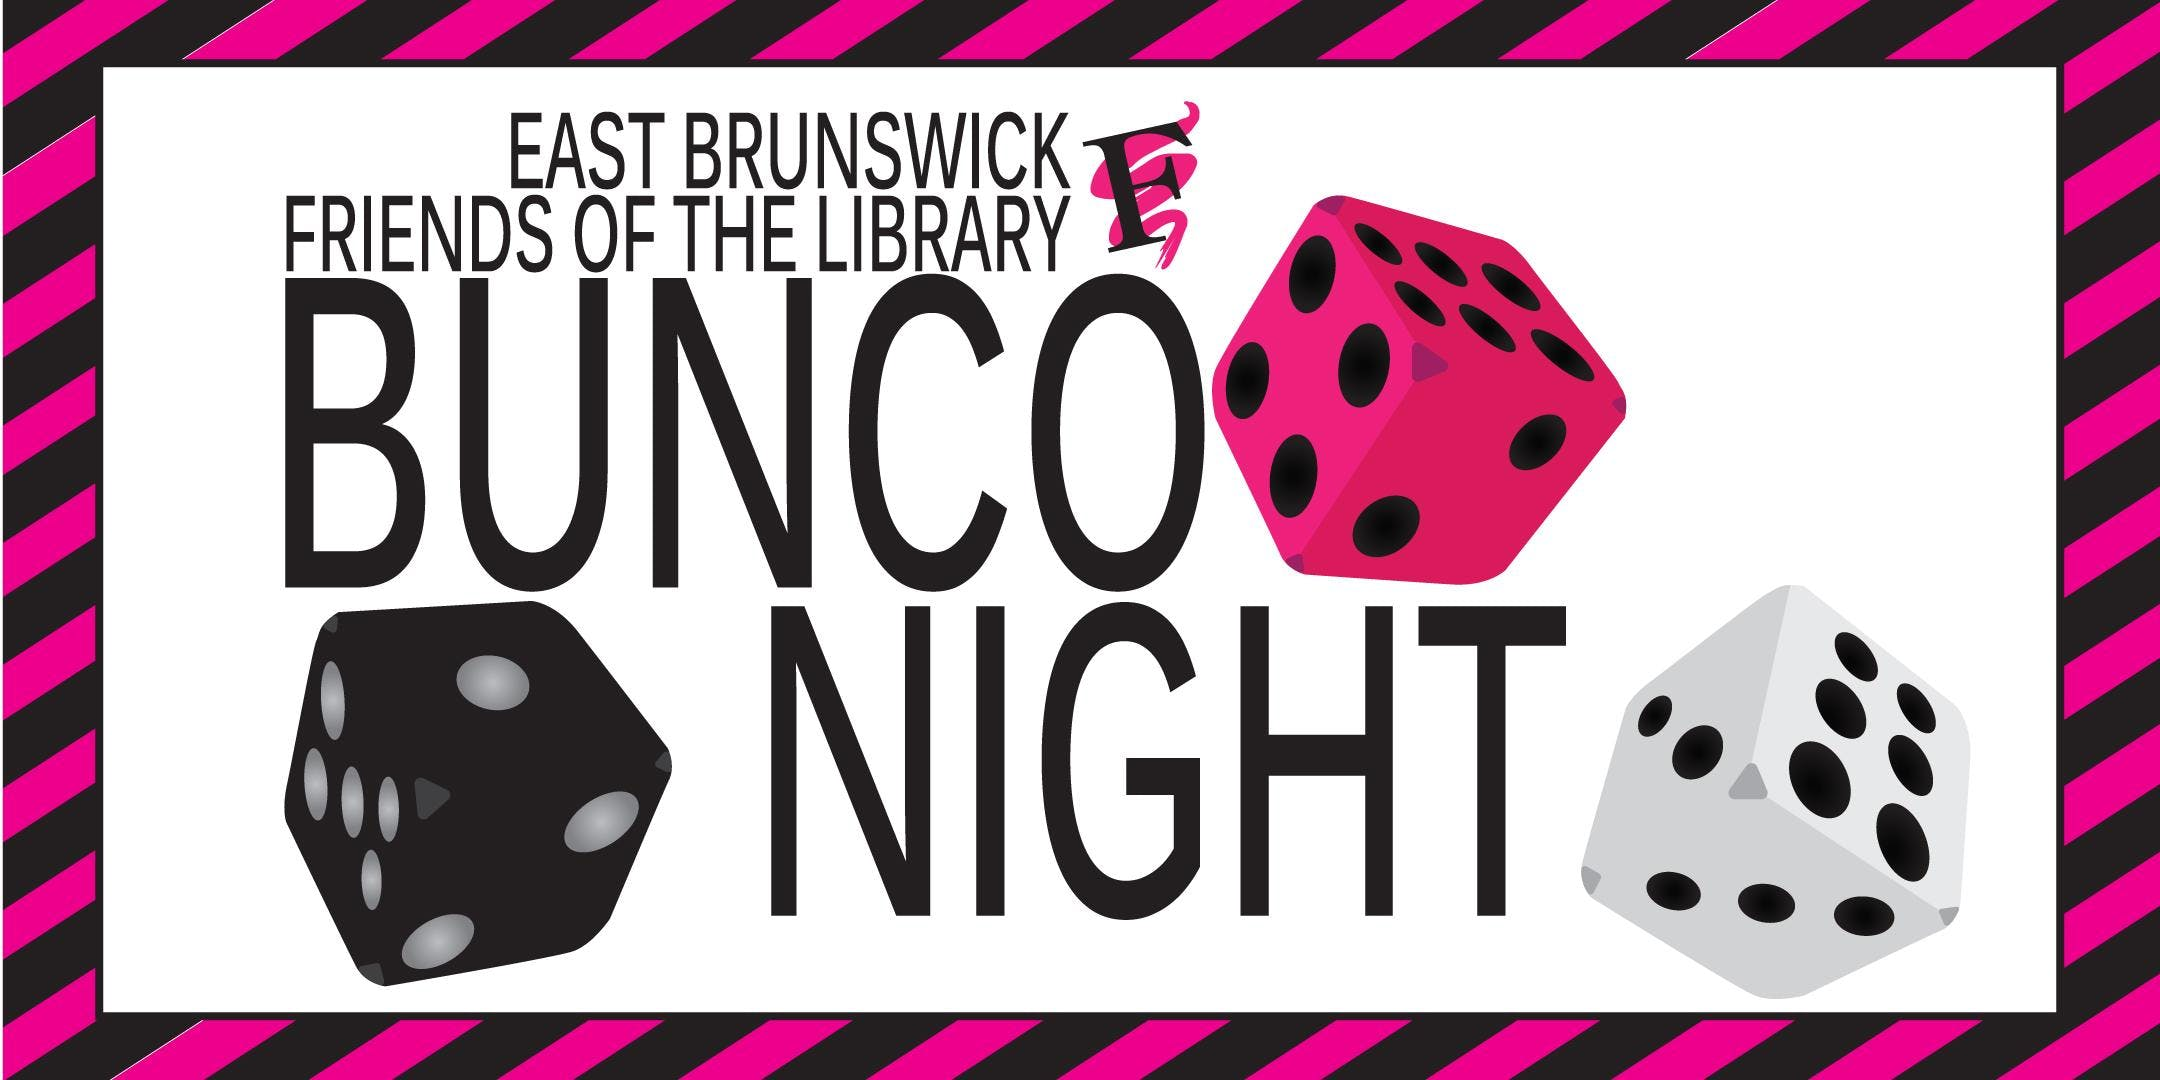 Friends of the Library Bunco Night